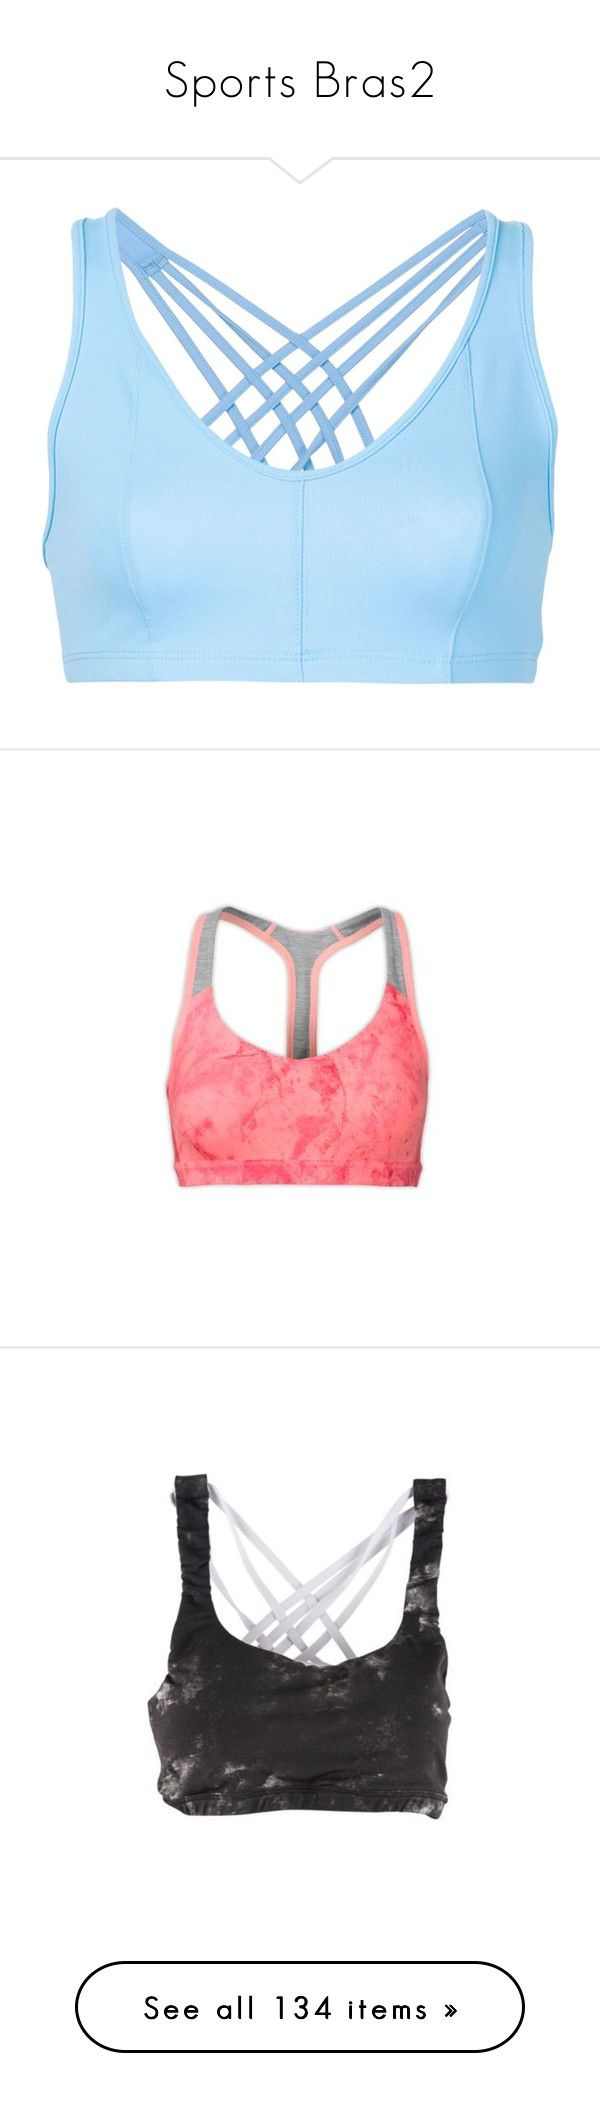 """""""Sports Bras2"""" by daniela-rosario ❤ liked on Polyvore featuring activewear, sports bras, black, black sports bra, neon peach, the north face, neon sports bra, red sports bra, neon activewear and white"""